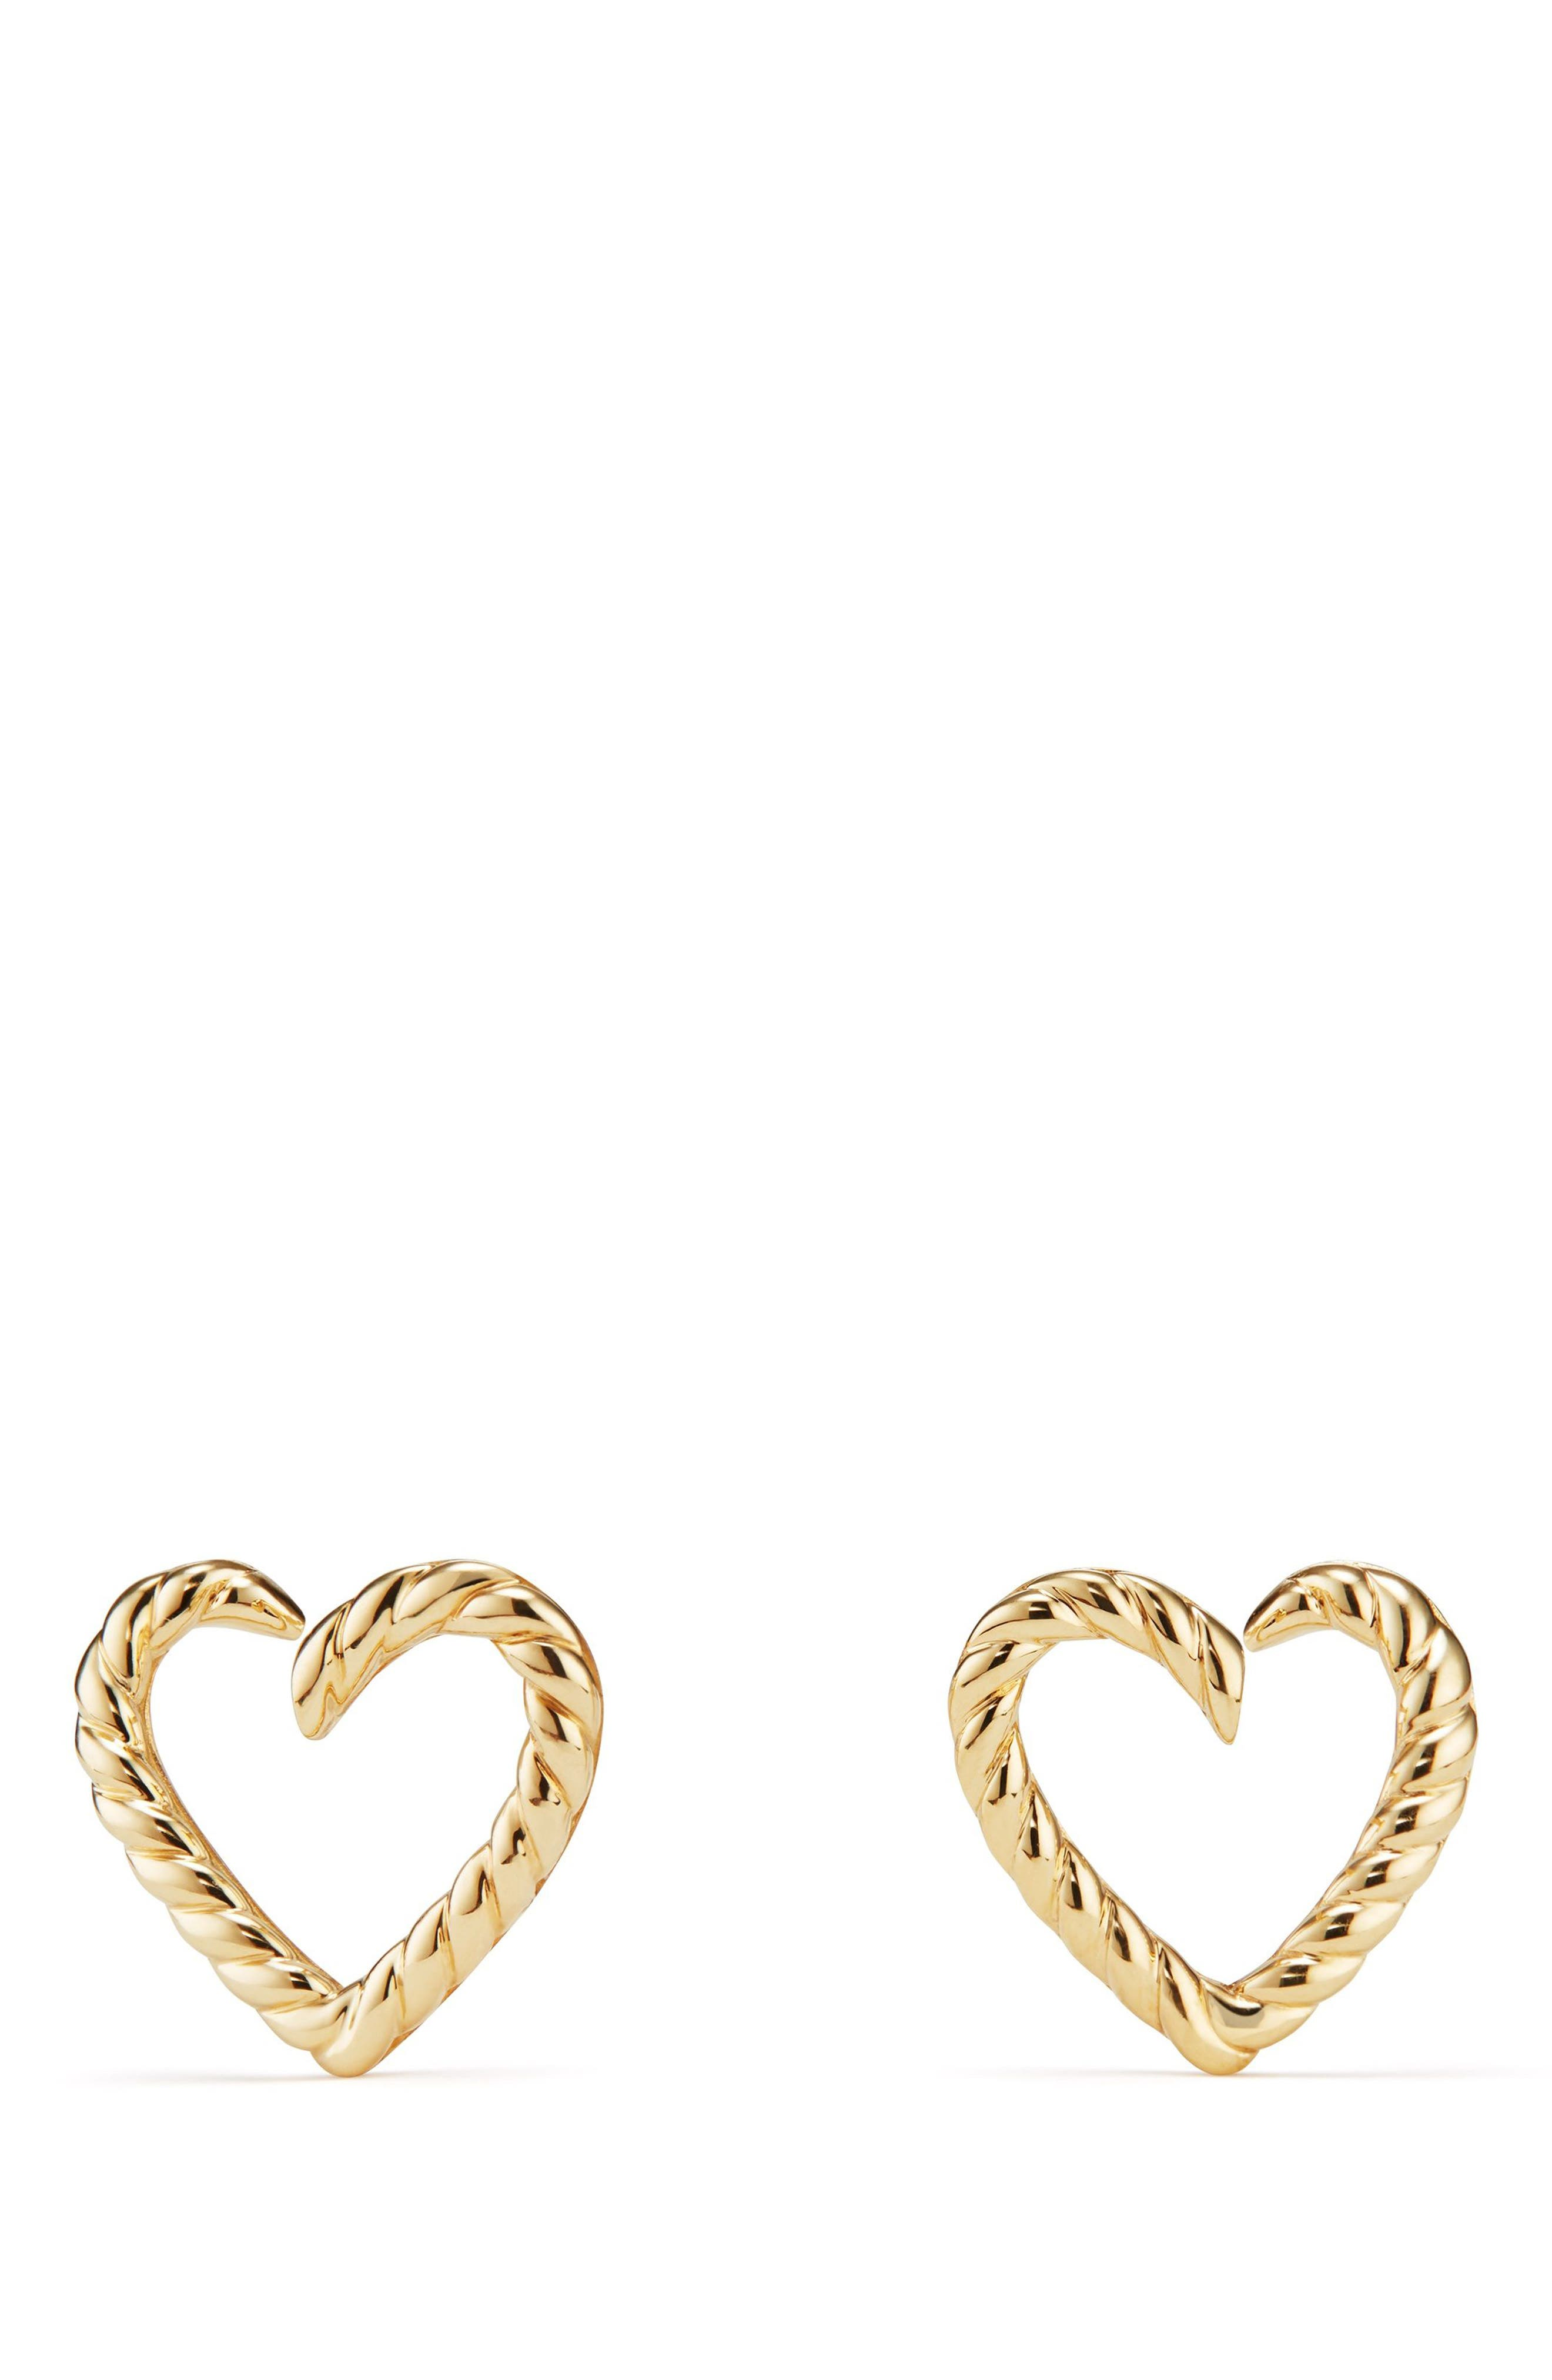 Cable Heart Earring in 18K Gold,                         Main,                         color, Gold